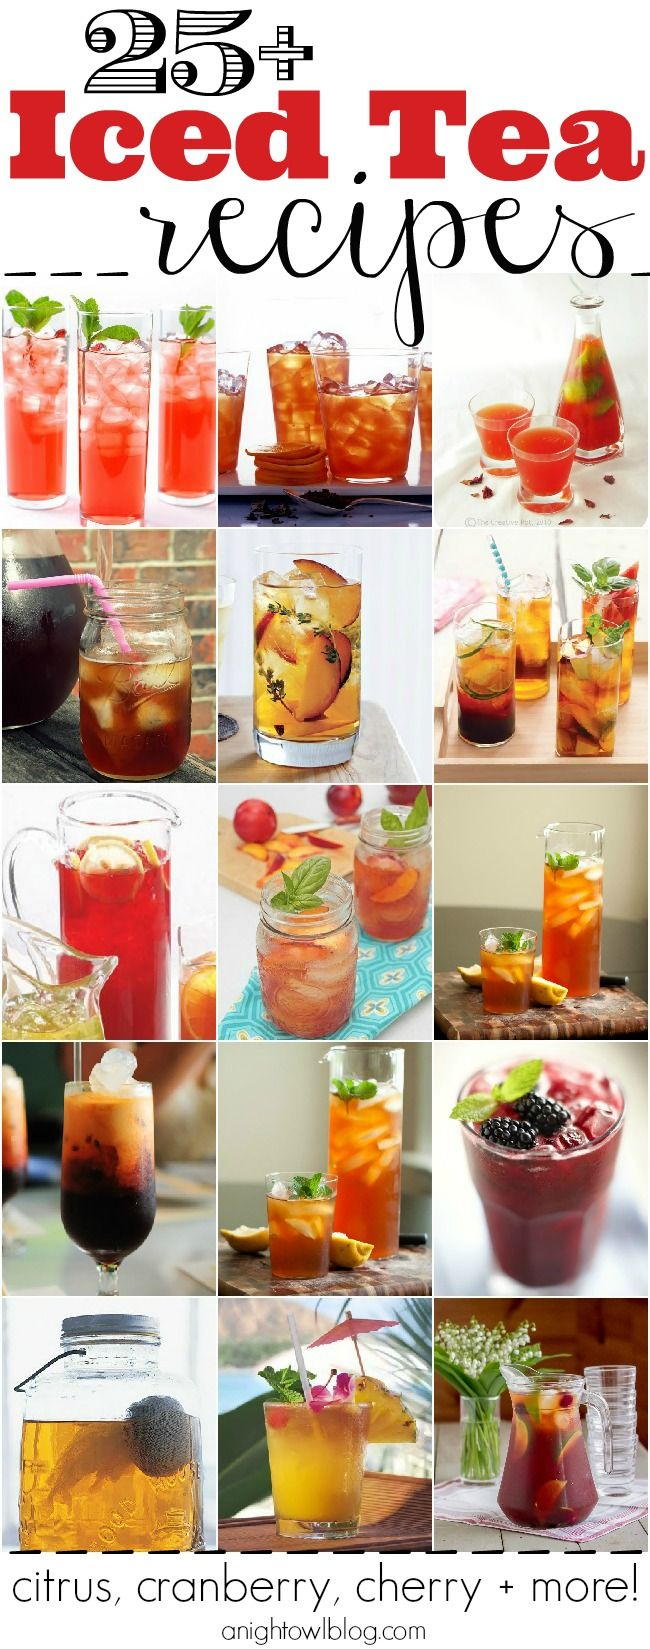 25 Iced Tea Recipes - Citrus, Cranberry, Cherry and MORE! | #icedtea #drink #recipes